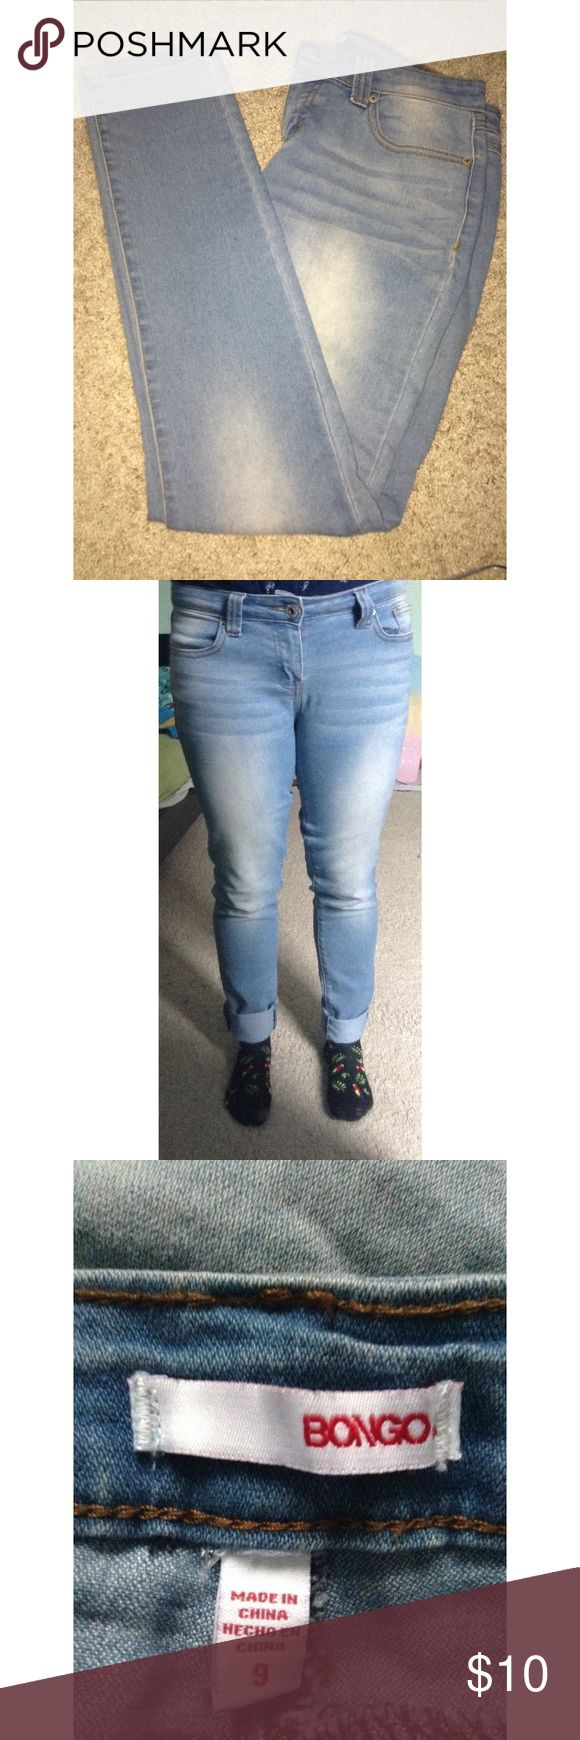 Brand New Light Blue Skinny Jeans They're brand new. I don't fit in them very well. They're soft and comfortable jeans. I folded up the ends of the legs in the photo. BONGO Pants Skinny